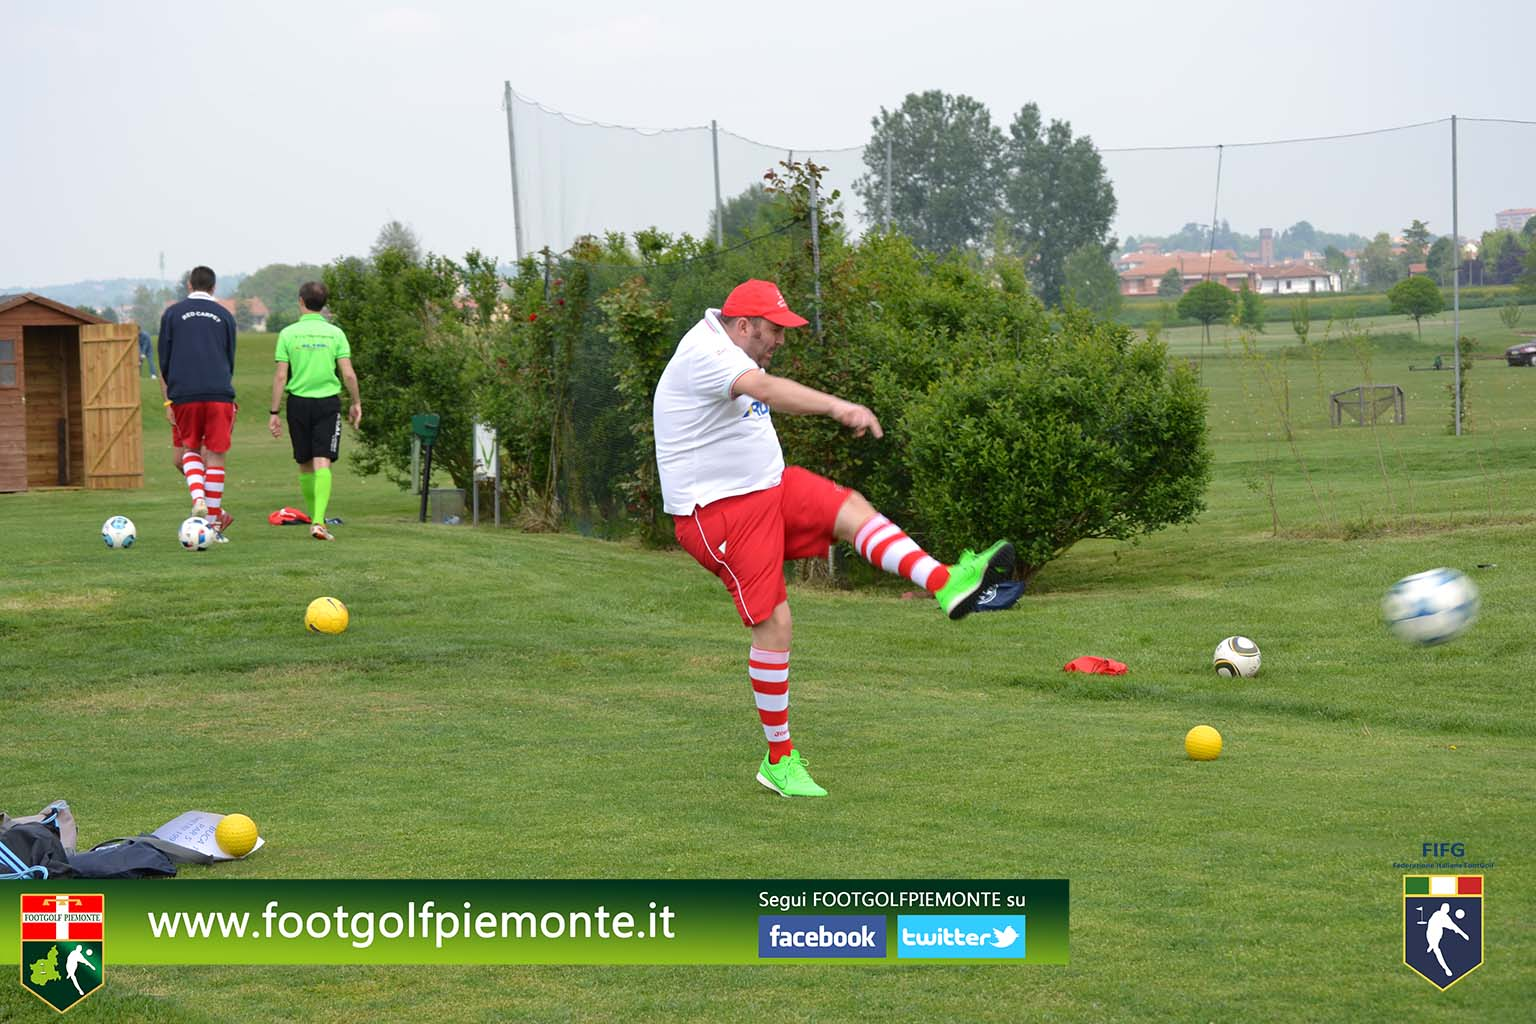 FOTO 9 Regions' Cup Footgolf Piemonte 2016 Golf Città di Asti (At) 30apr16-9